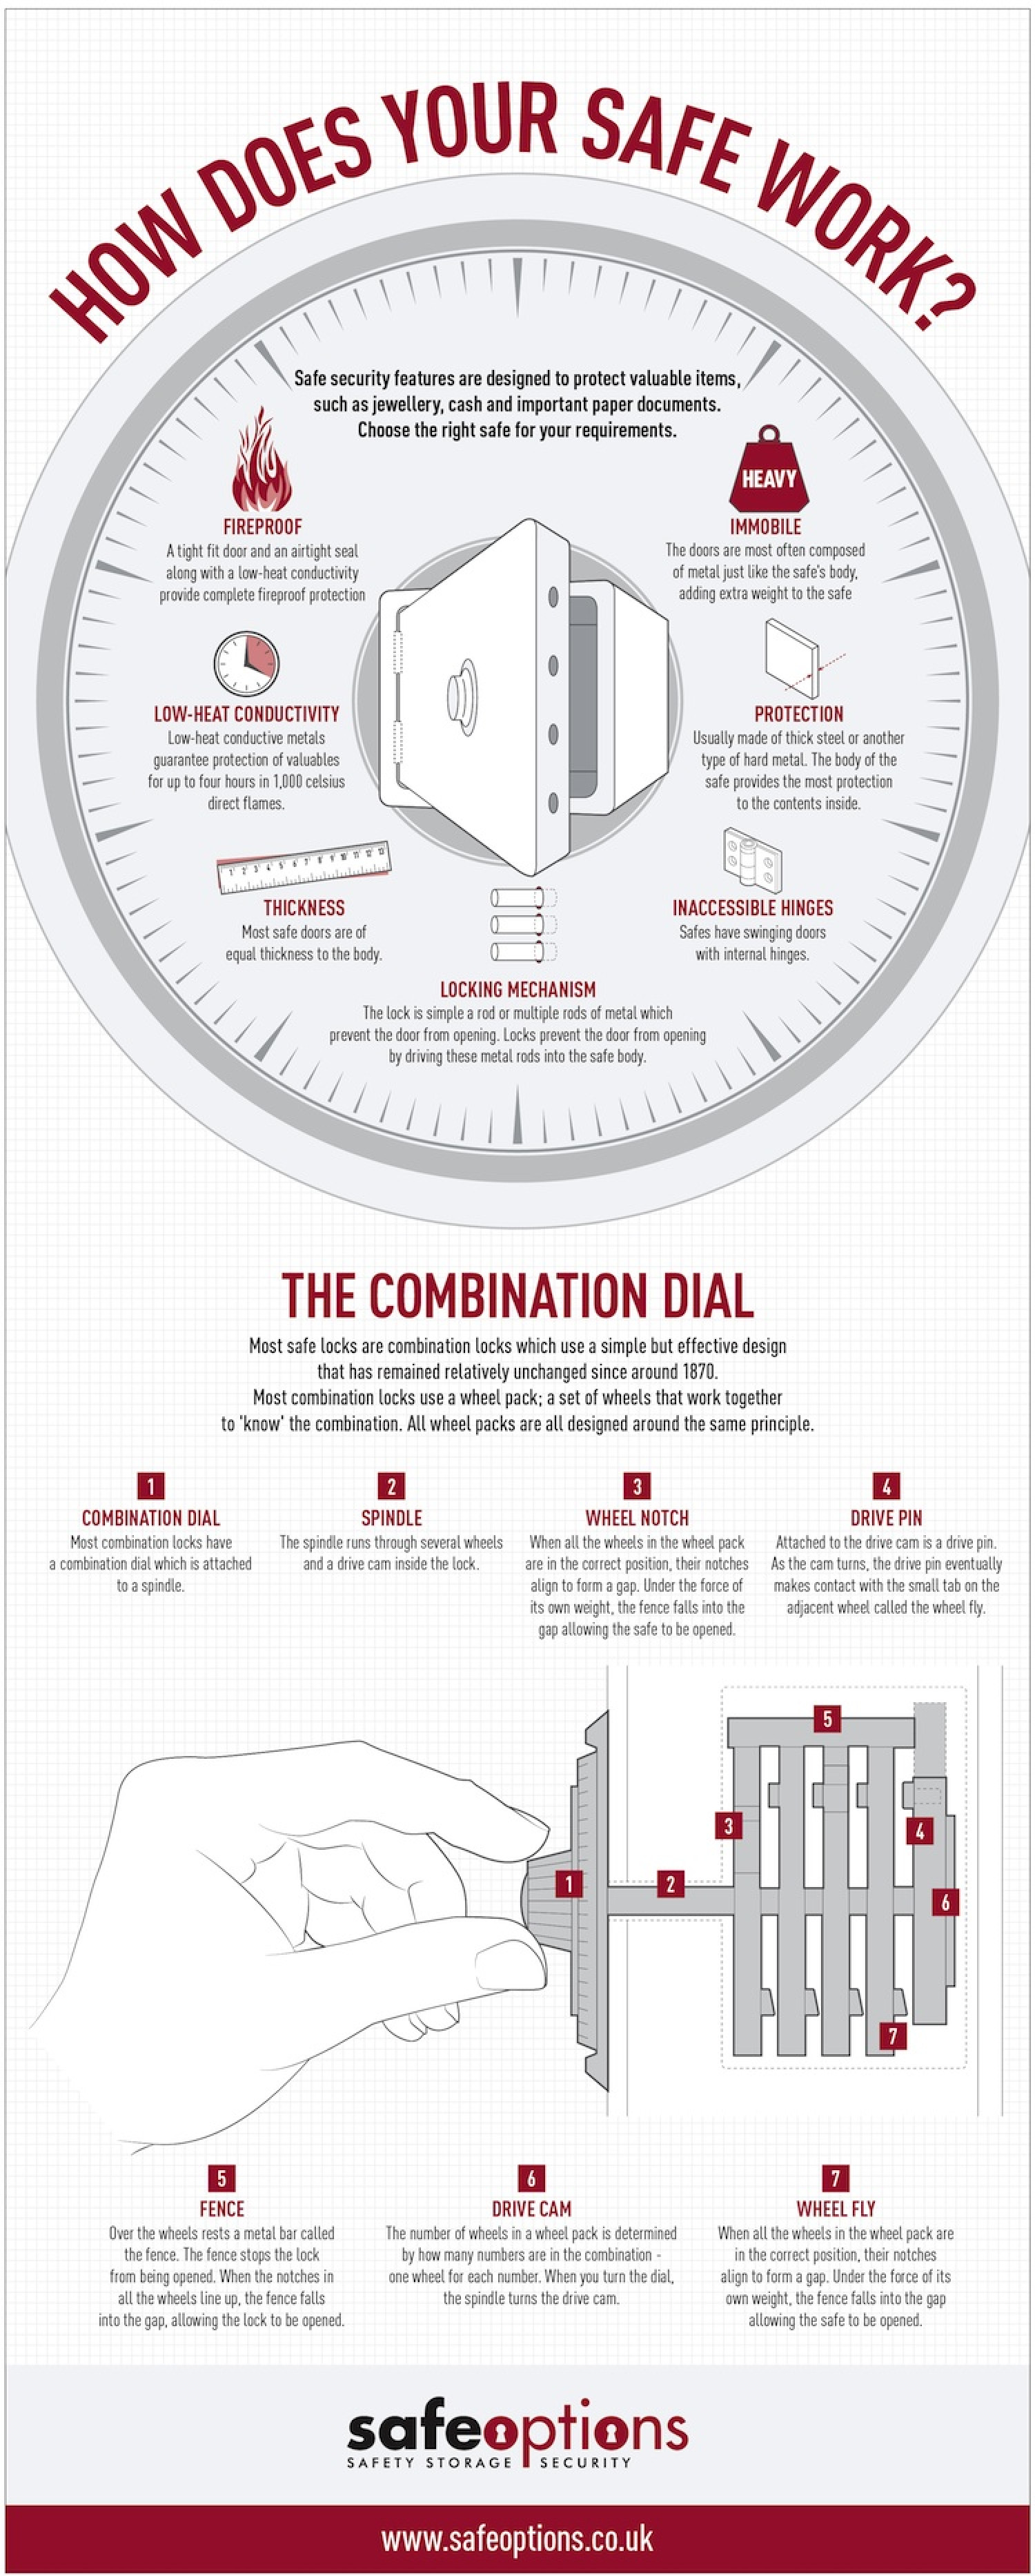 How Does My Safe Work? Infographic